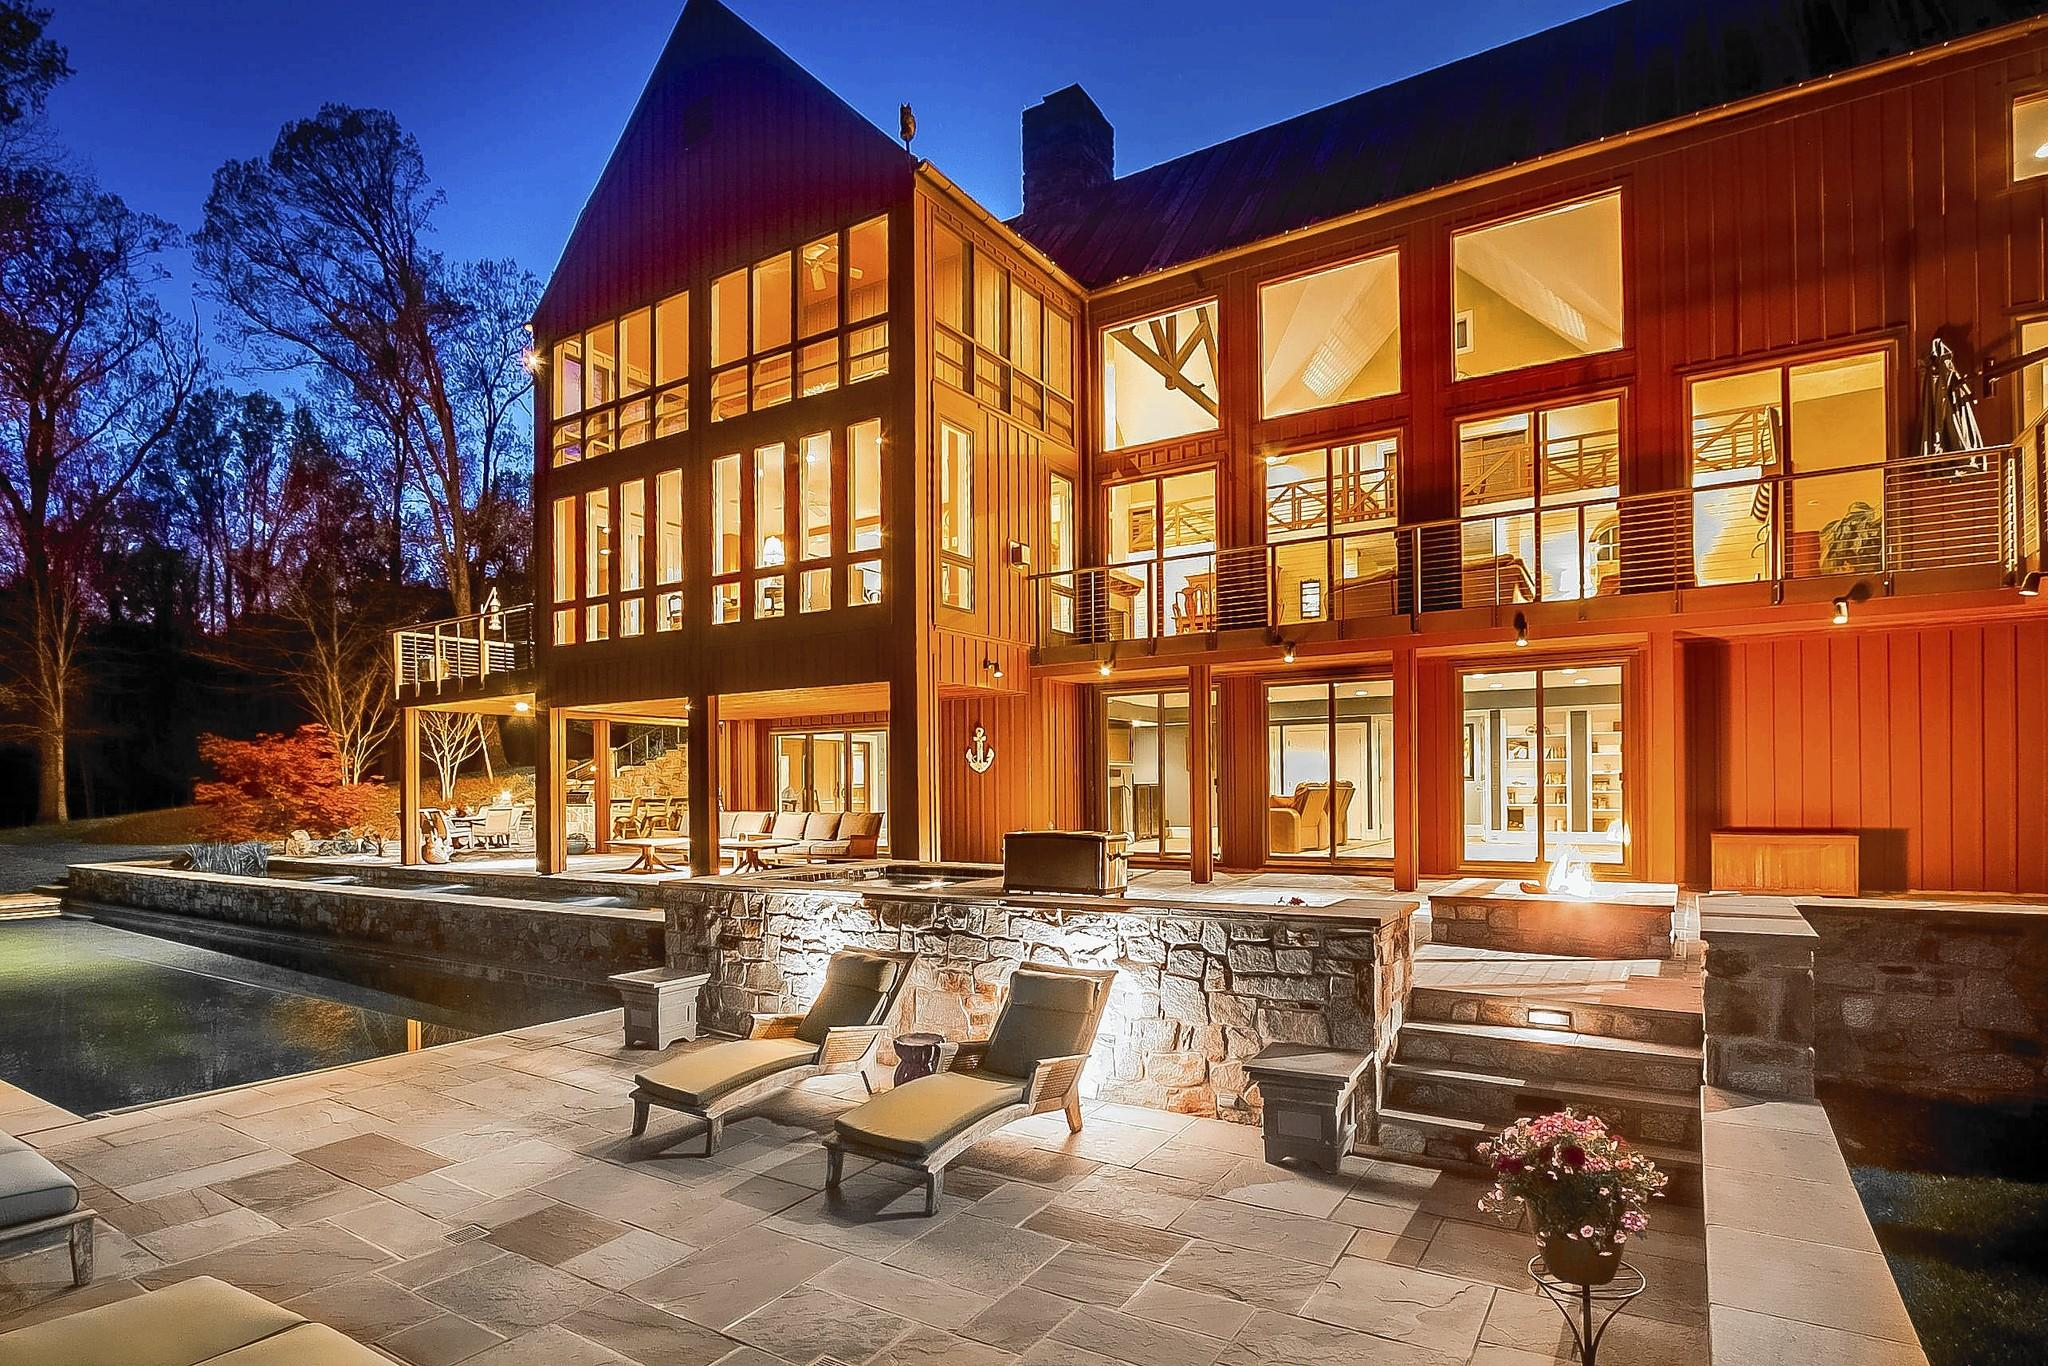 Positioned on more than 27 acres overlooking the Gunpowder Falls, this property was designed by noted architect Walter Ramberg.